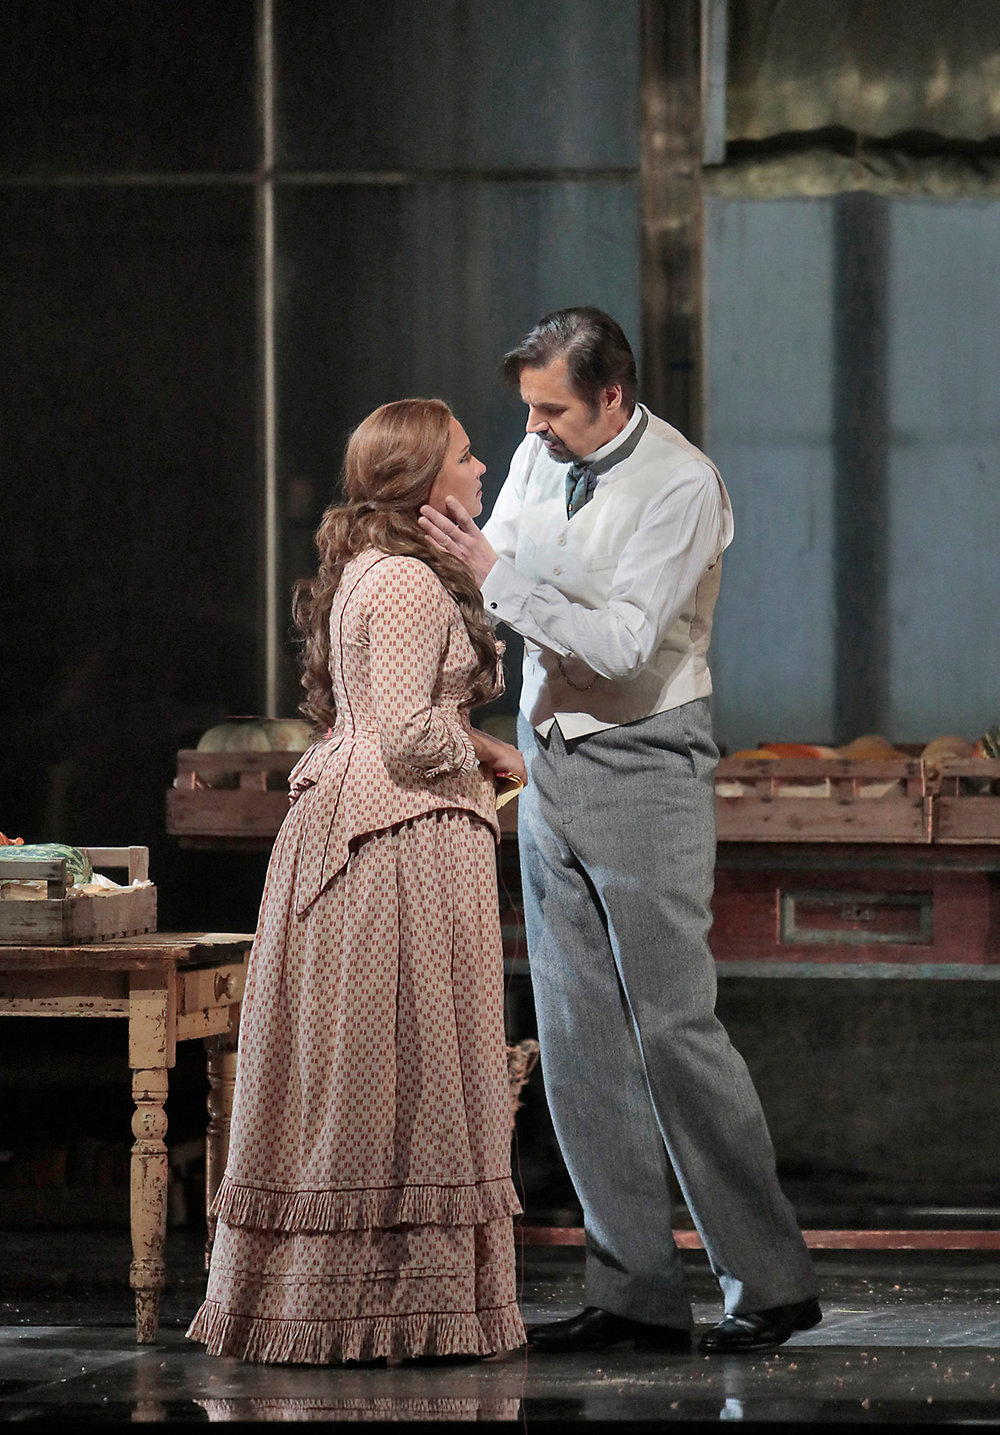 Anna Netrebko as Tatiana and Peter Mattei as Onegin discussing her letter. Photo by Ken Howard; courtesy of the Metropolitan Opera.